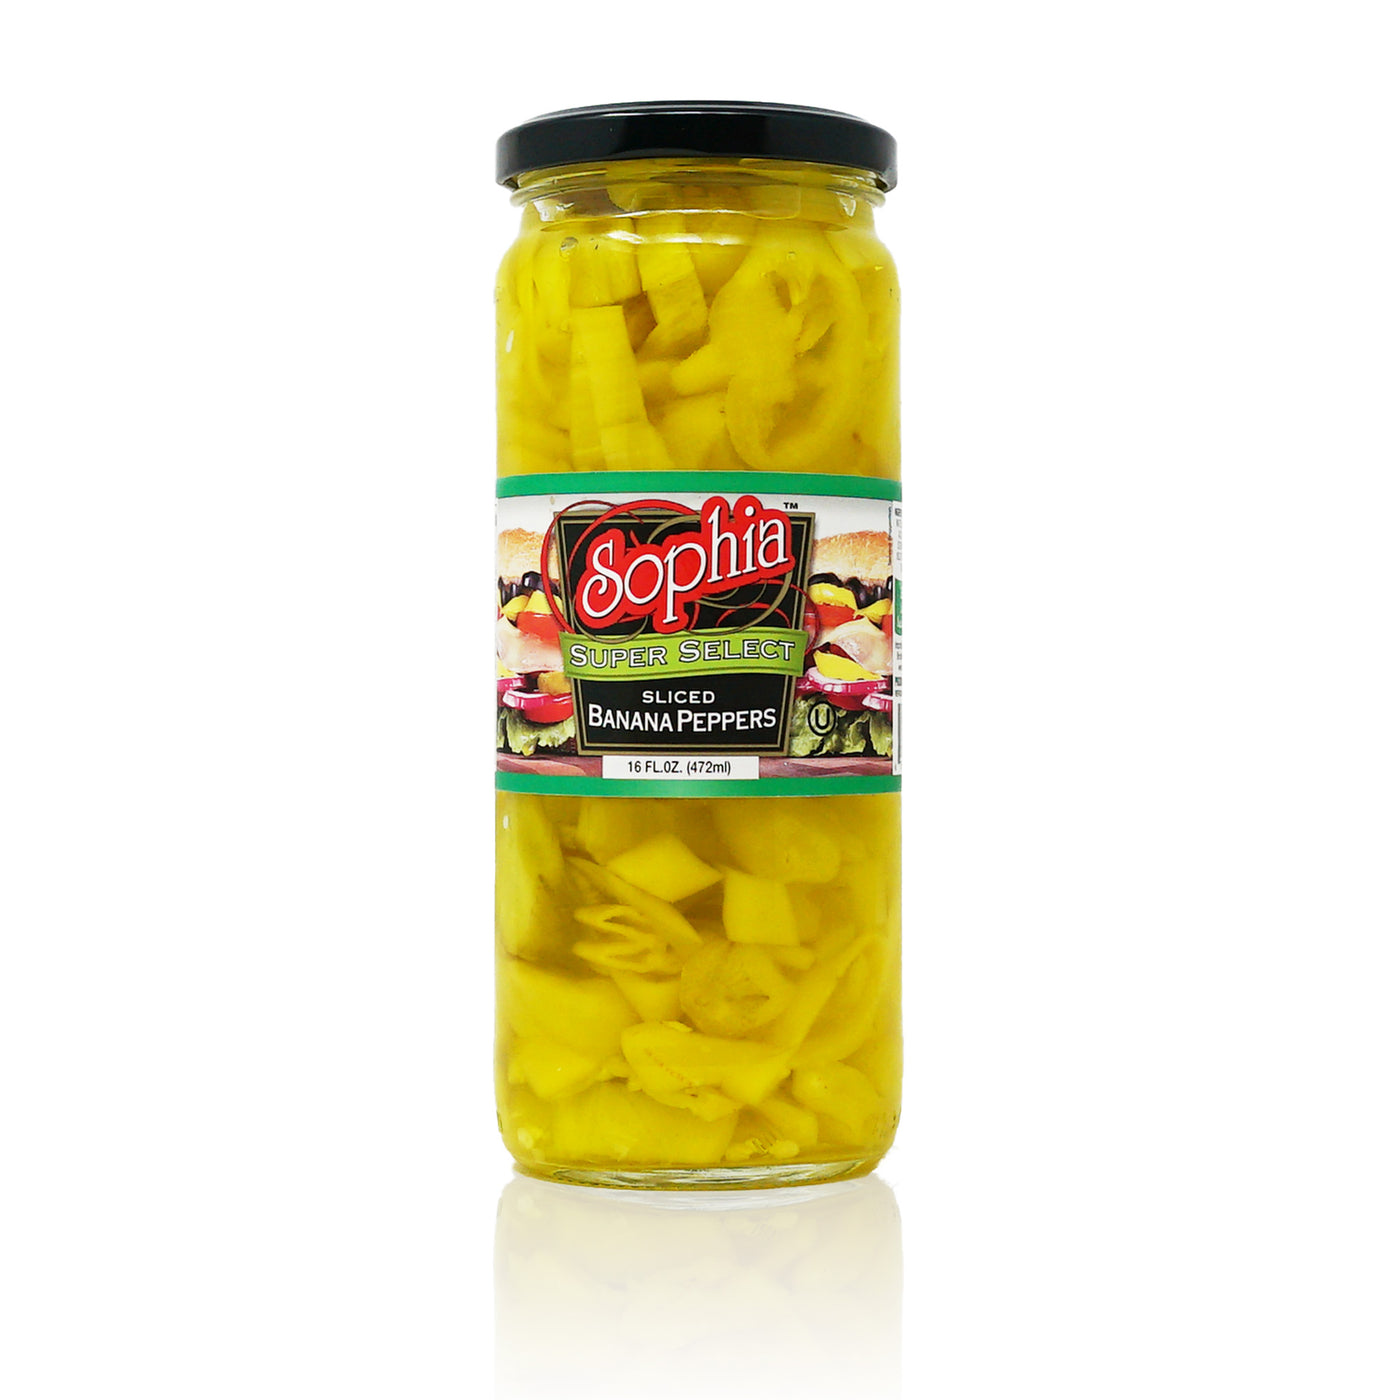 Sophia Peppers - Banana Peppers, Sliced 17oz